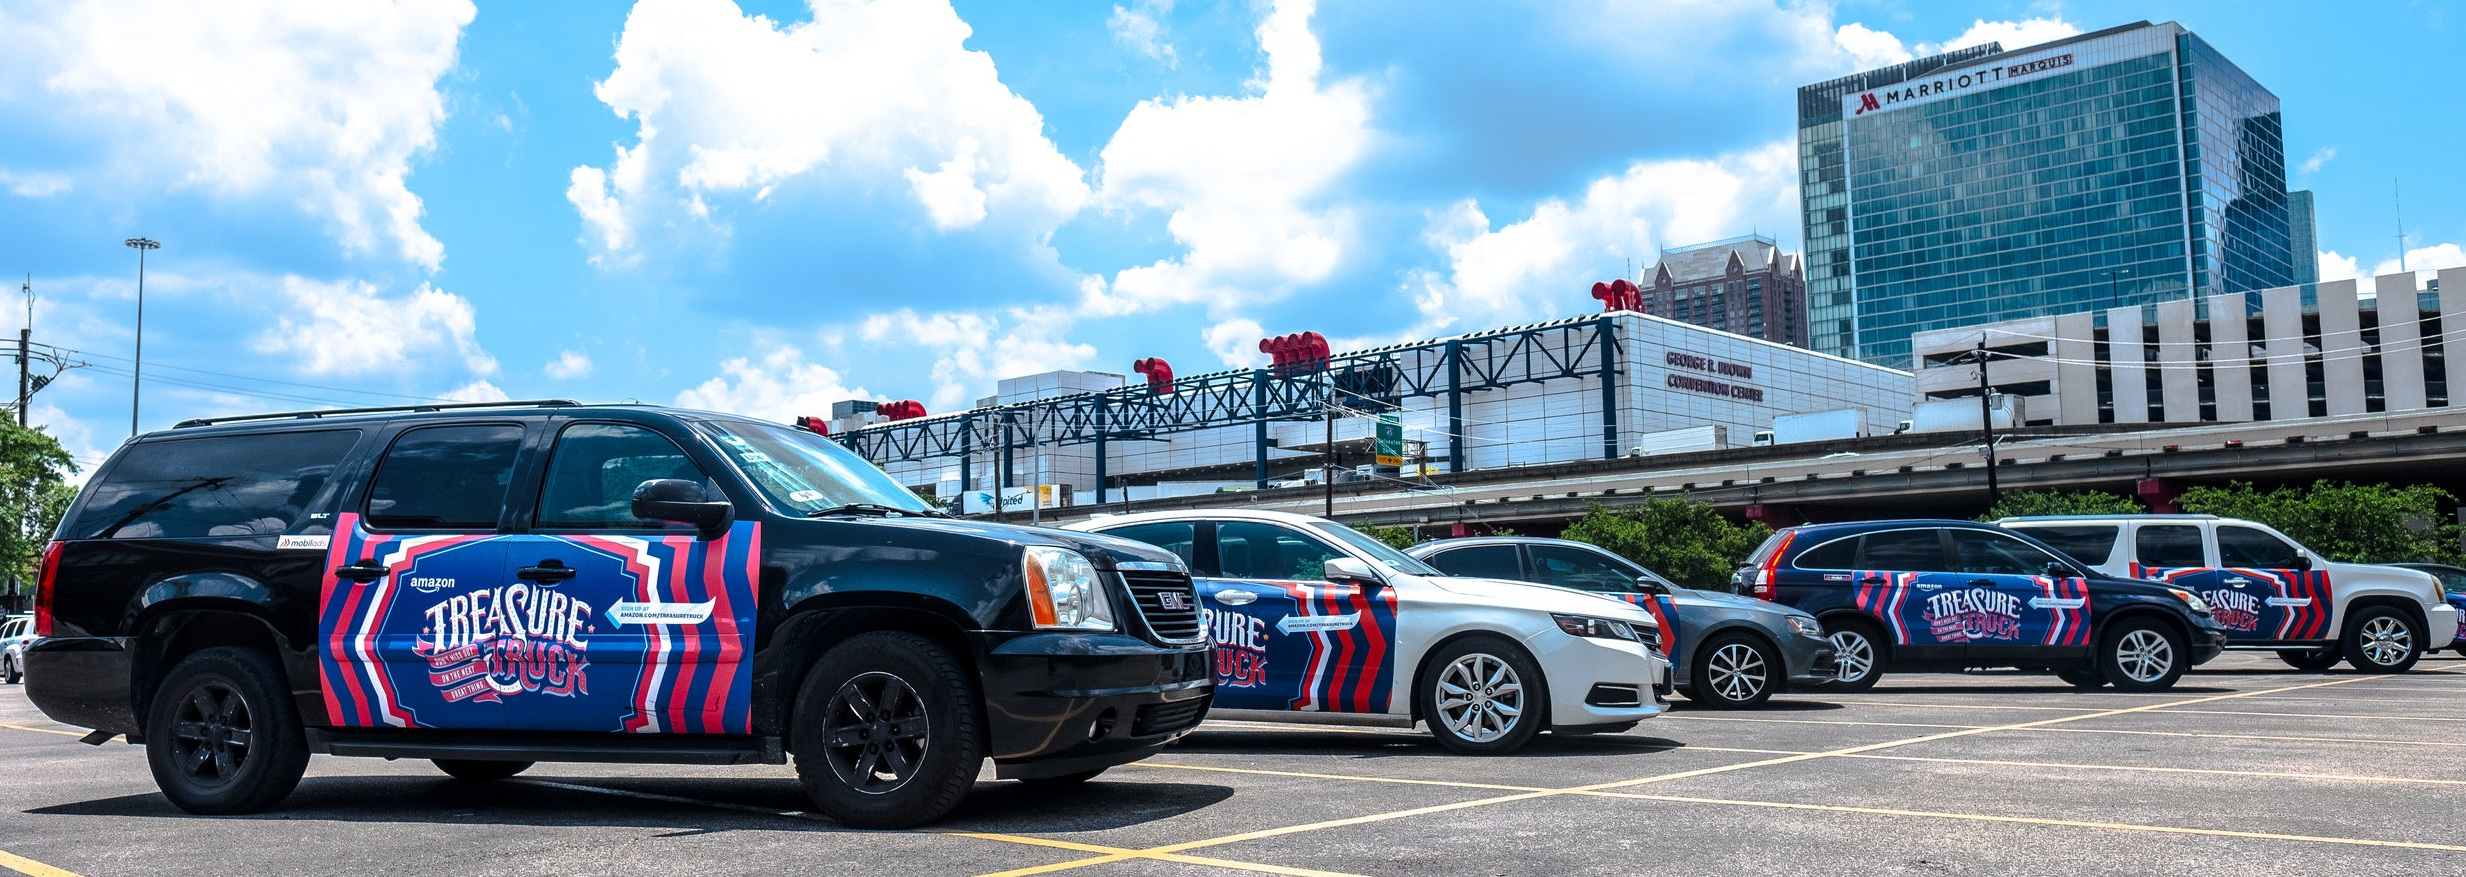 - WE'RE PROUD TO PARTNER WITH AMAZON TO PROVIDE RIDESHARE DRIVERS AN ADVERTISING CAMPAIGN TO EARN MONEY IN COLUMBUS!